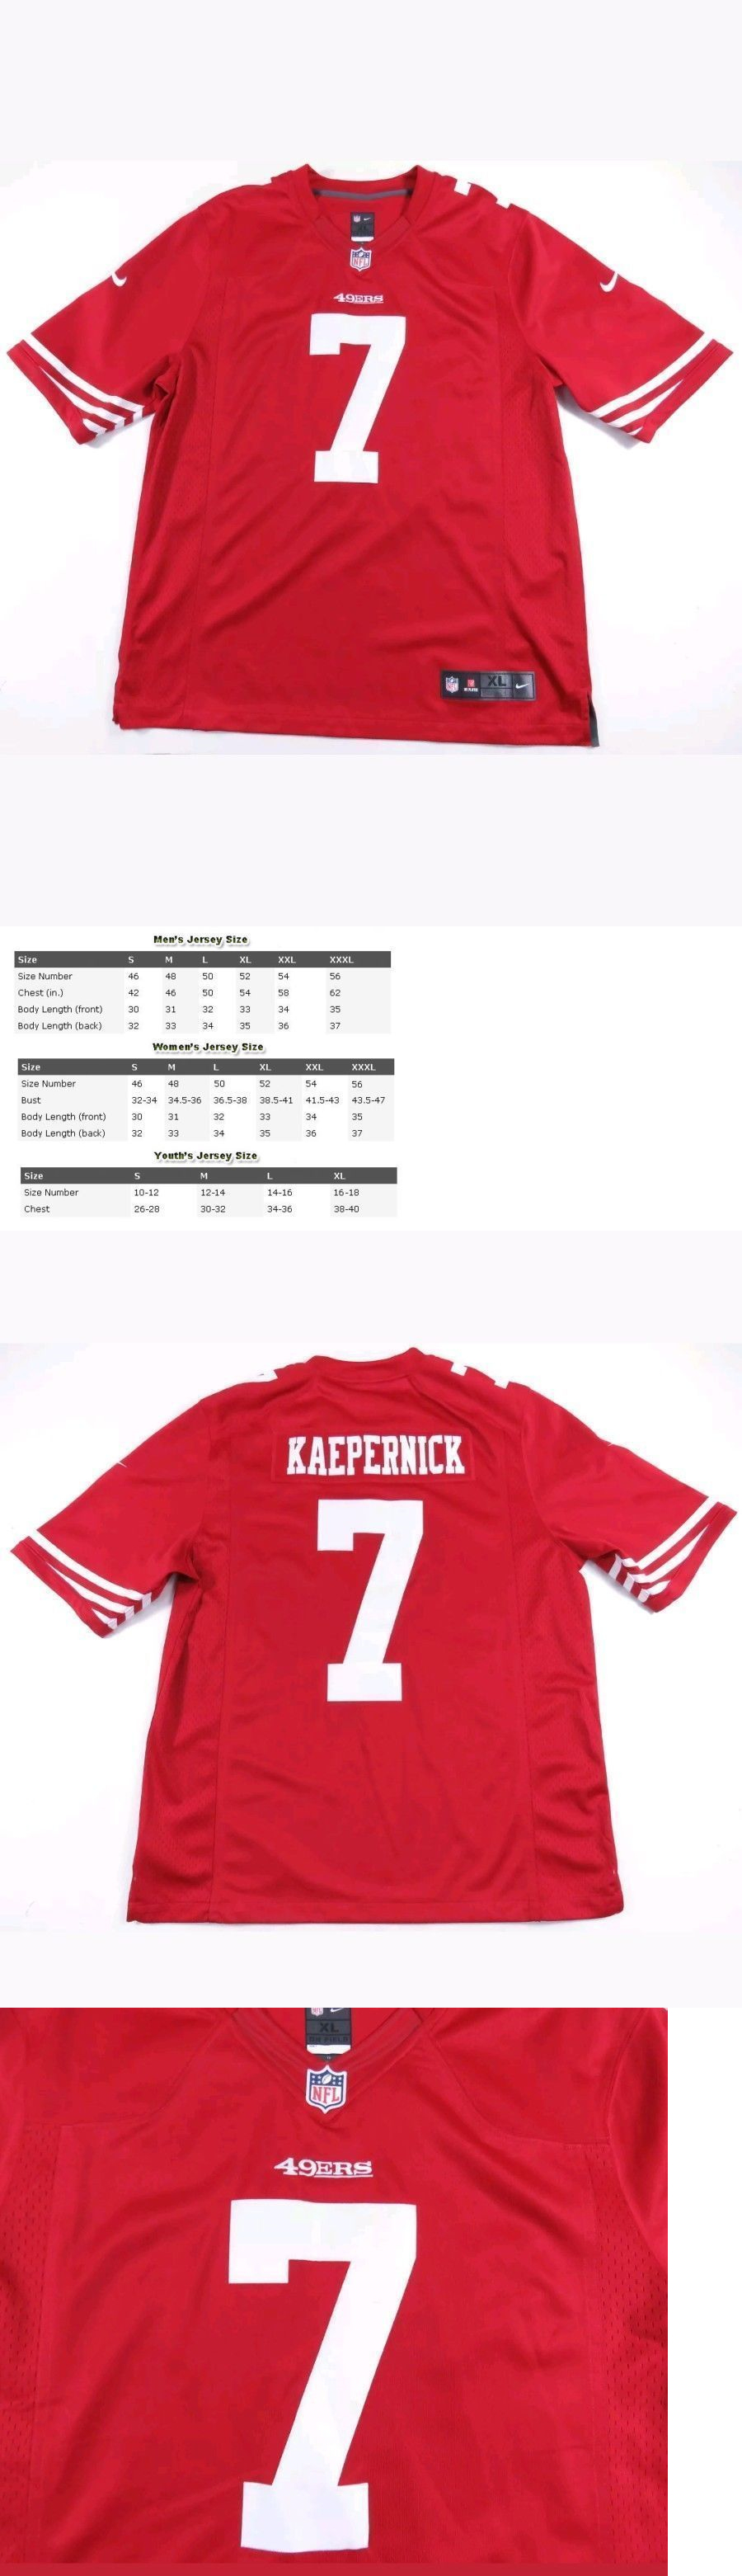 3ffbcfe7d ... san francisco 49ers 7 colin kaepernick jerseys nike . fb649 b46d6   coupon code for elite gray gridiron nfl jersey cheapest other fan apparel  and ...